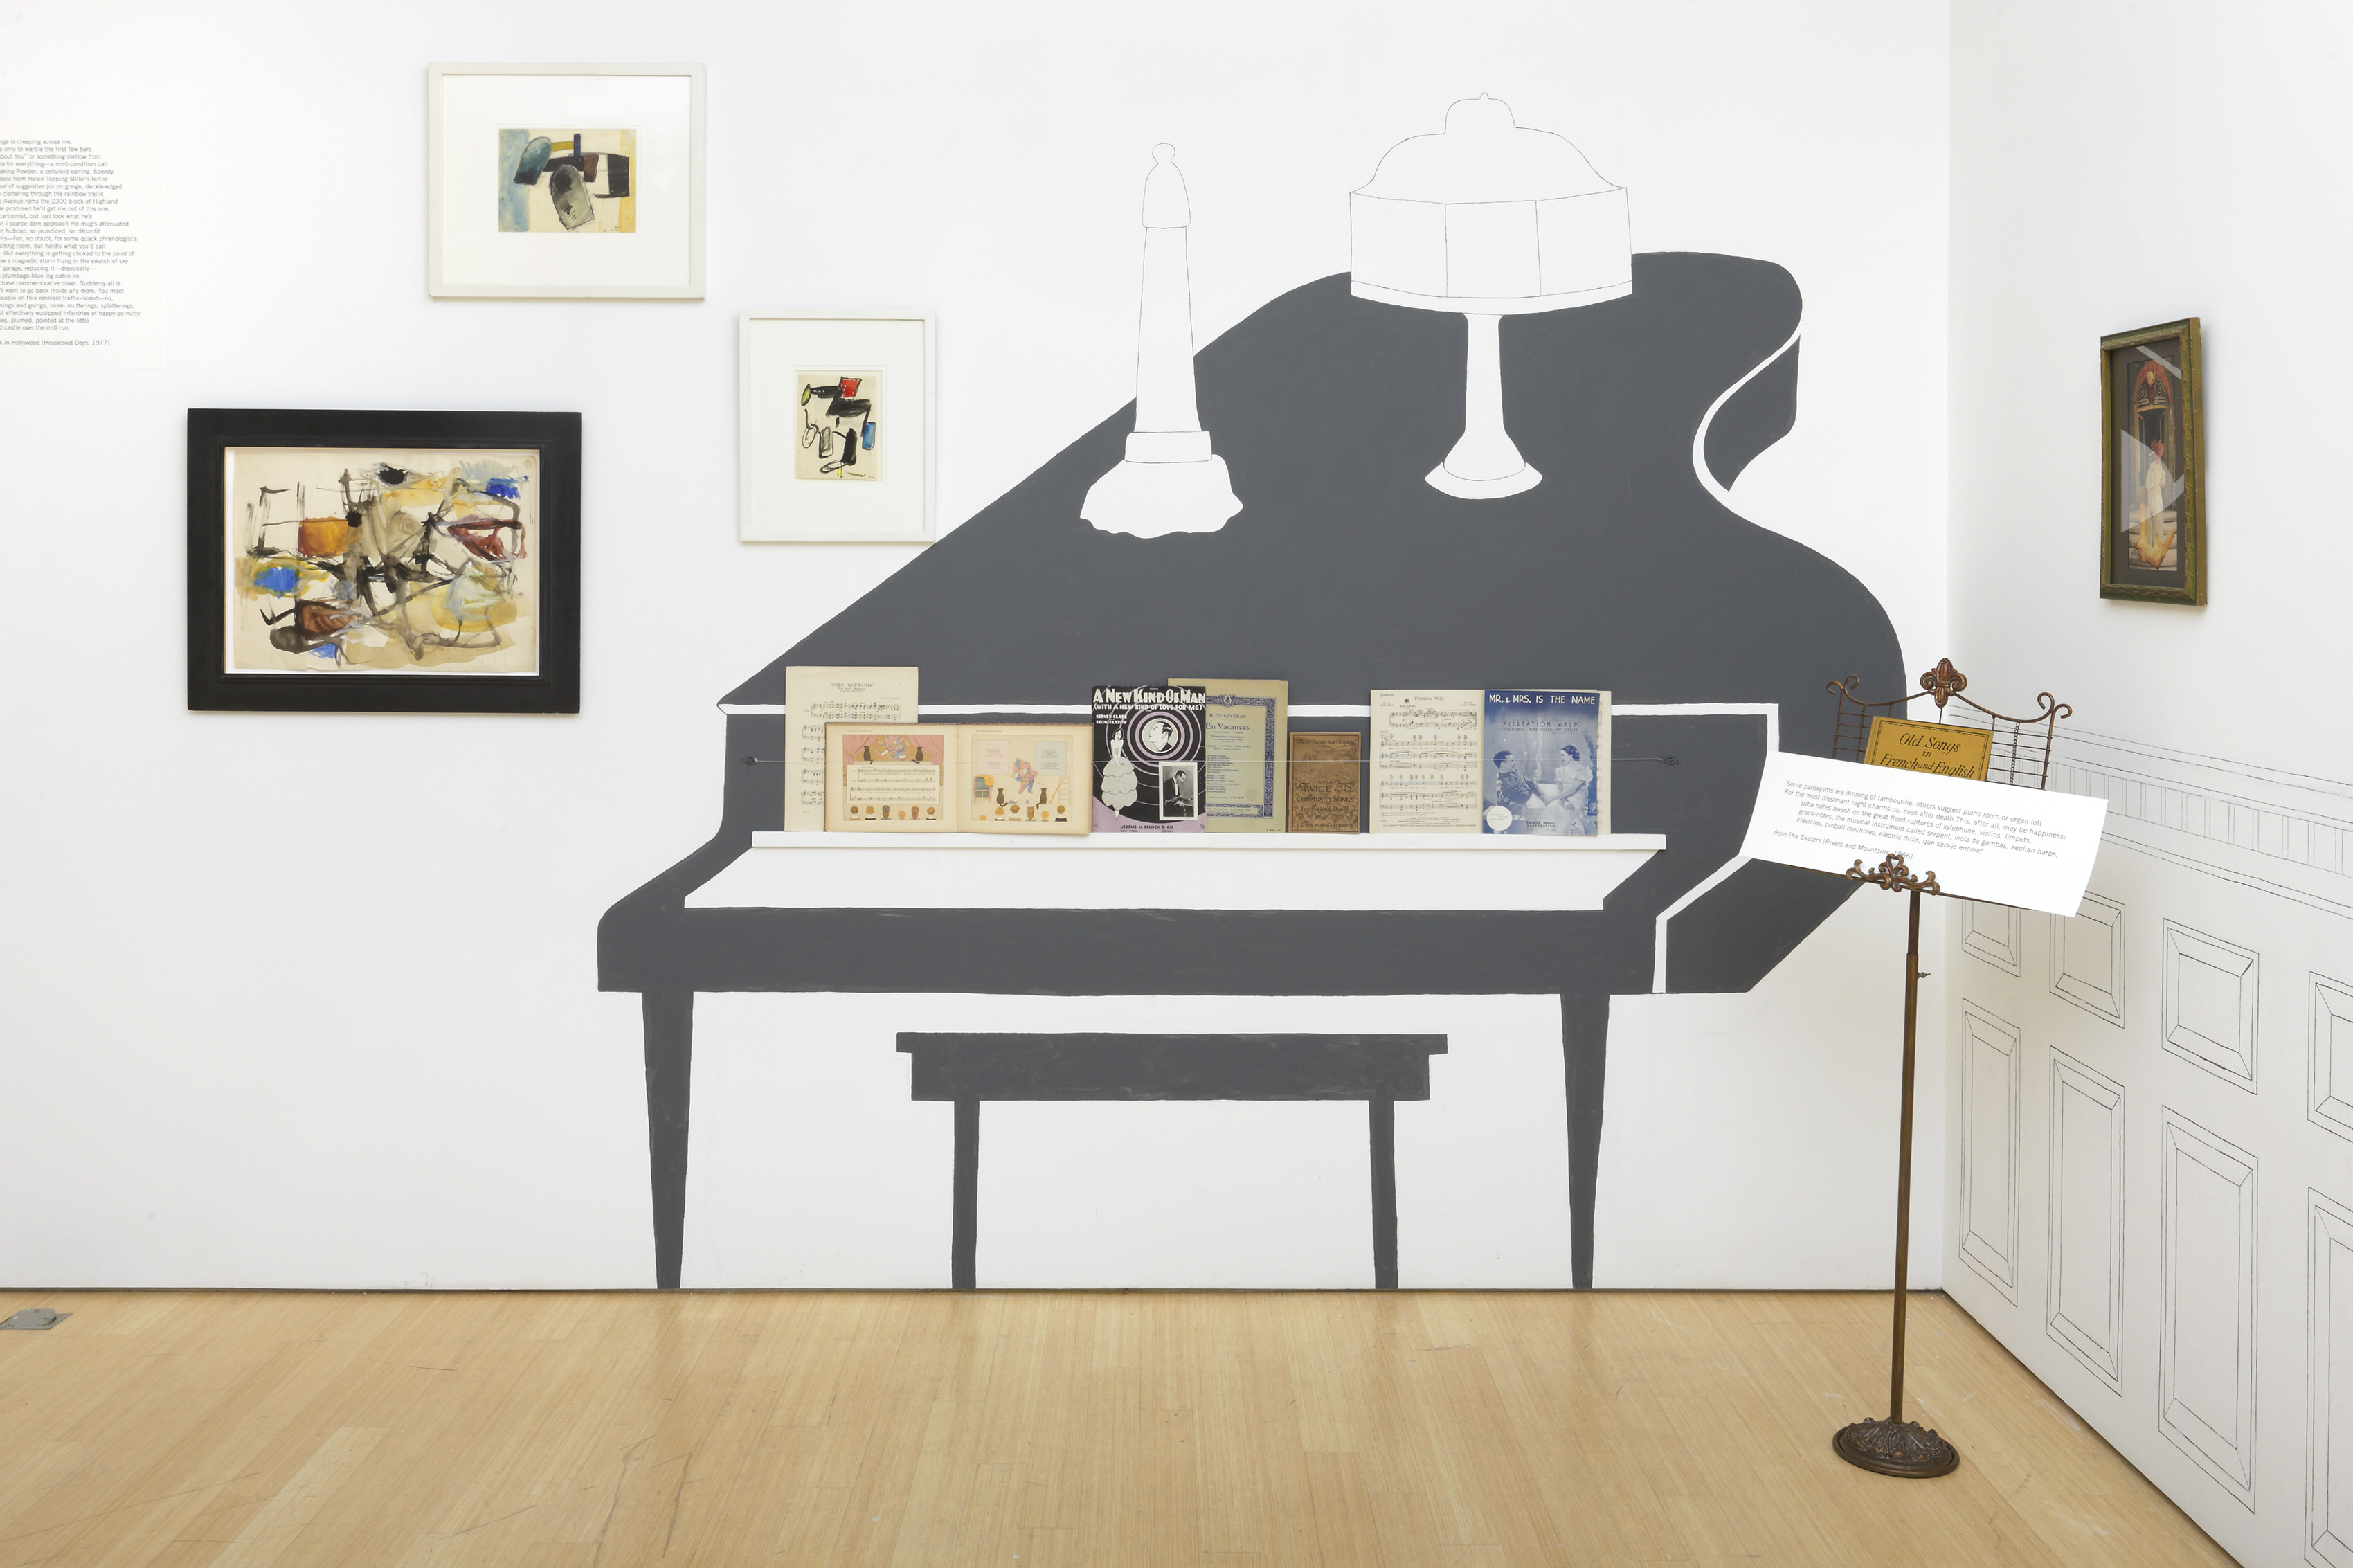 Installation view of  John Ashbery Collects  Poet Among Things. Art House  On  John Ashbery Collects    The Paris Review